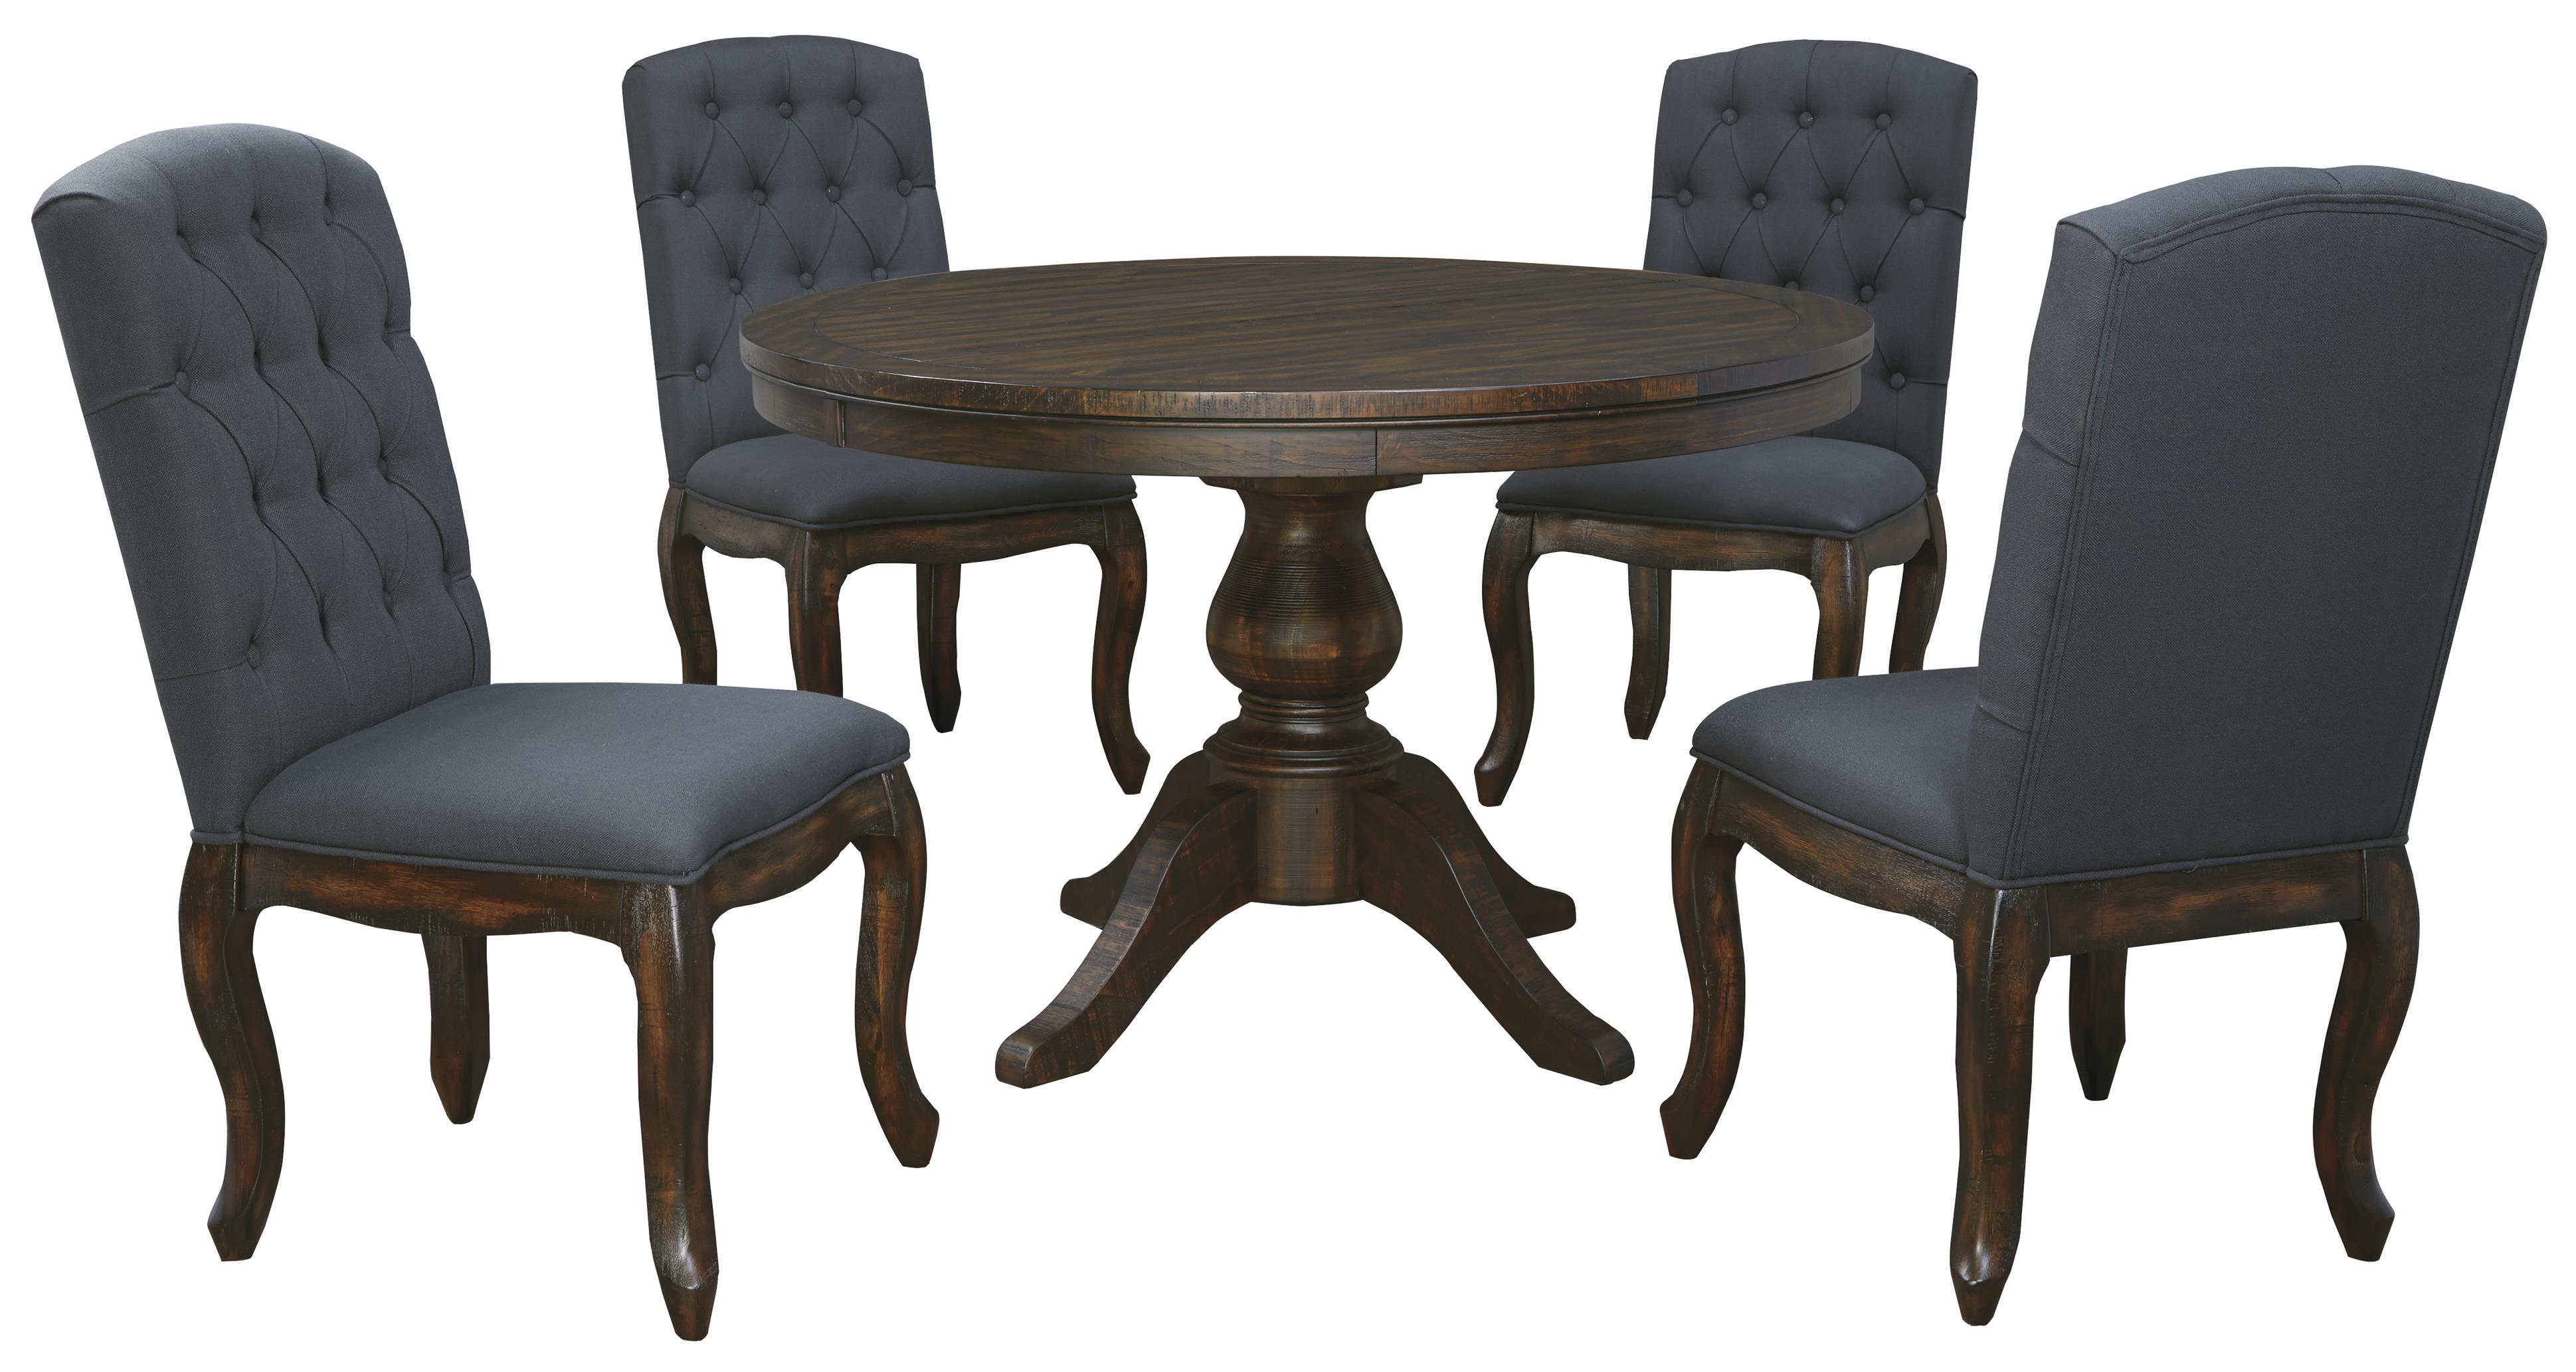 5 piece round dining table set with upholstered side